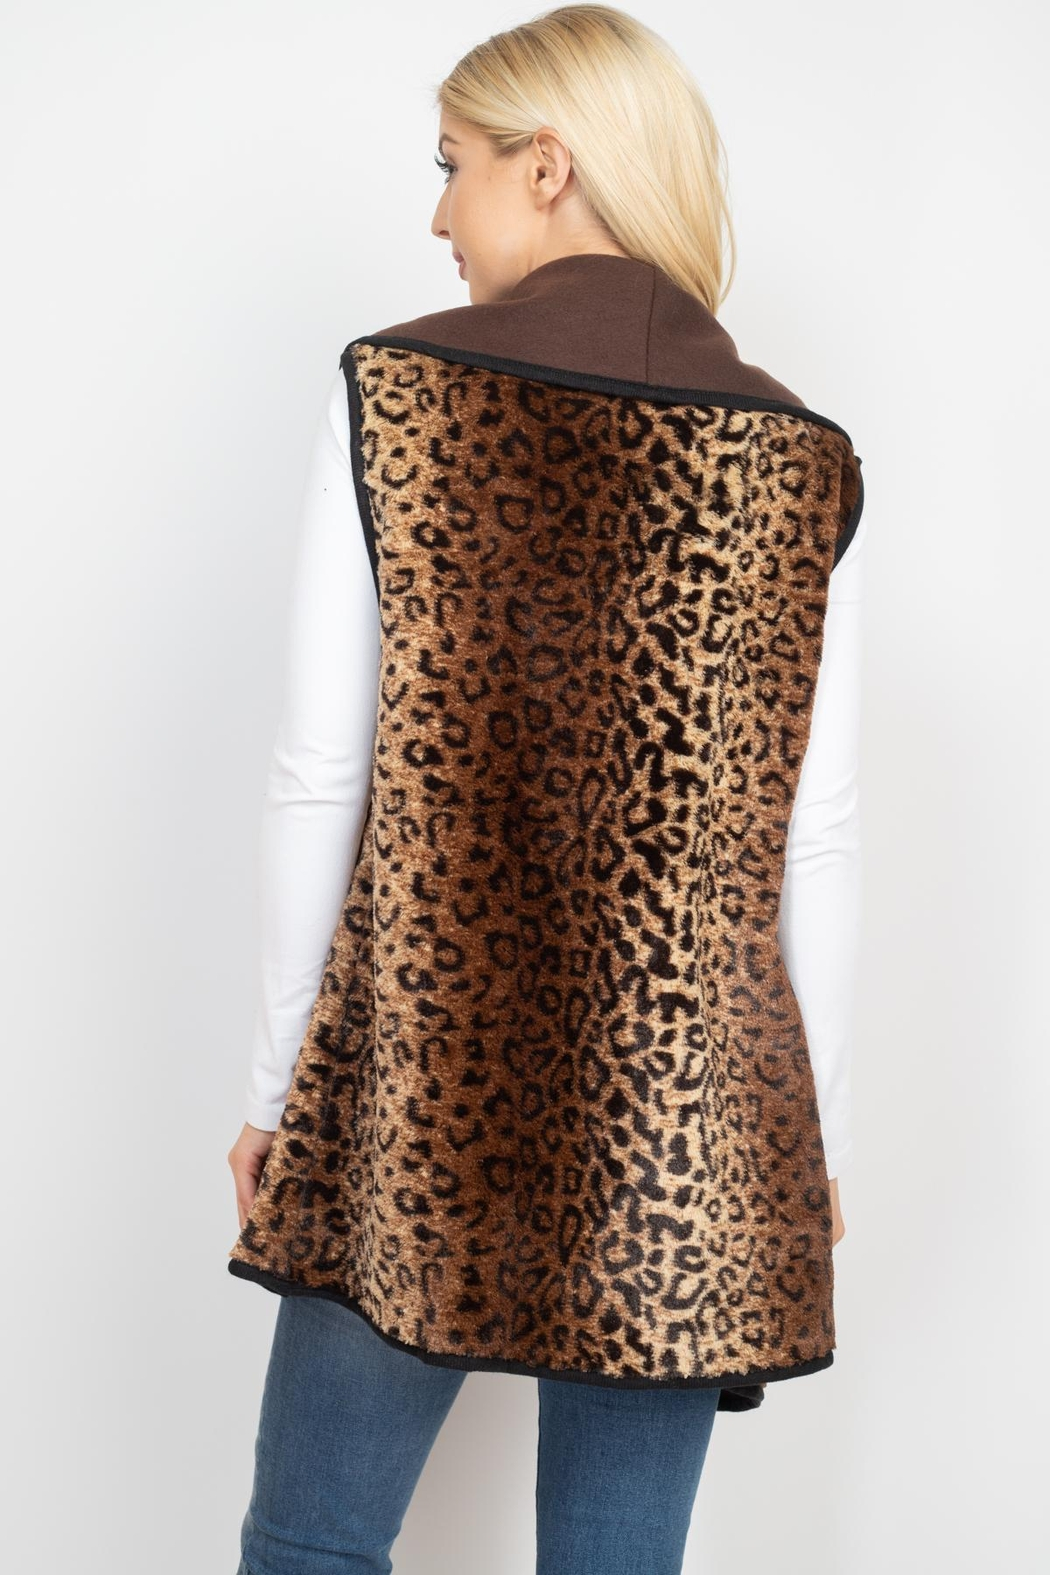 Riah Fashion Leopard-Print-With-Slider-Strap-Vest - Front Full Image